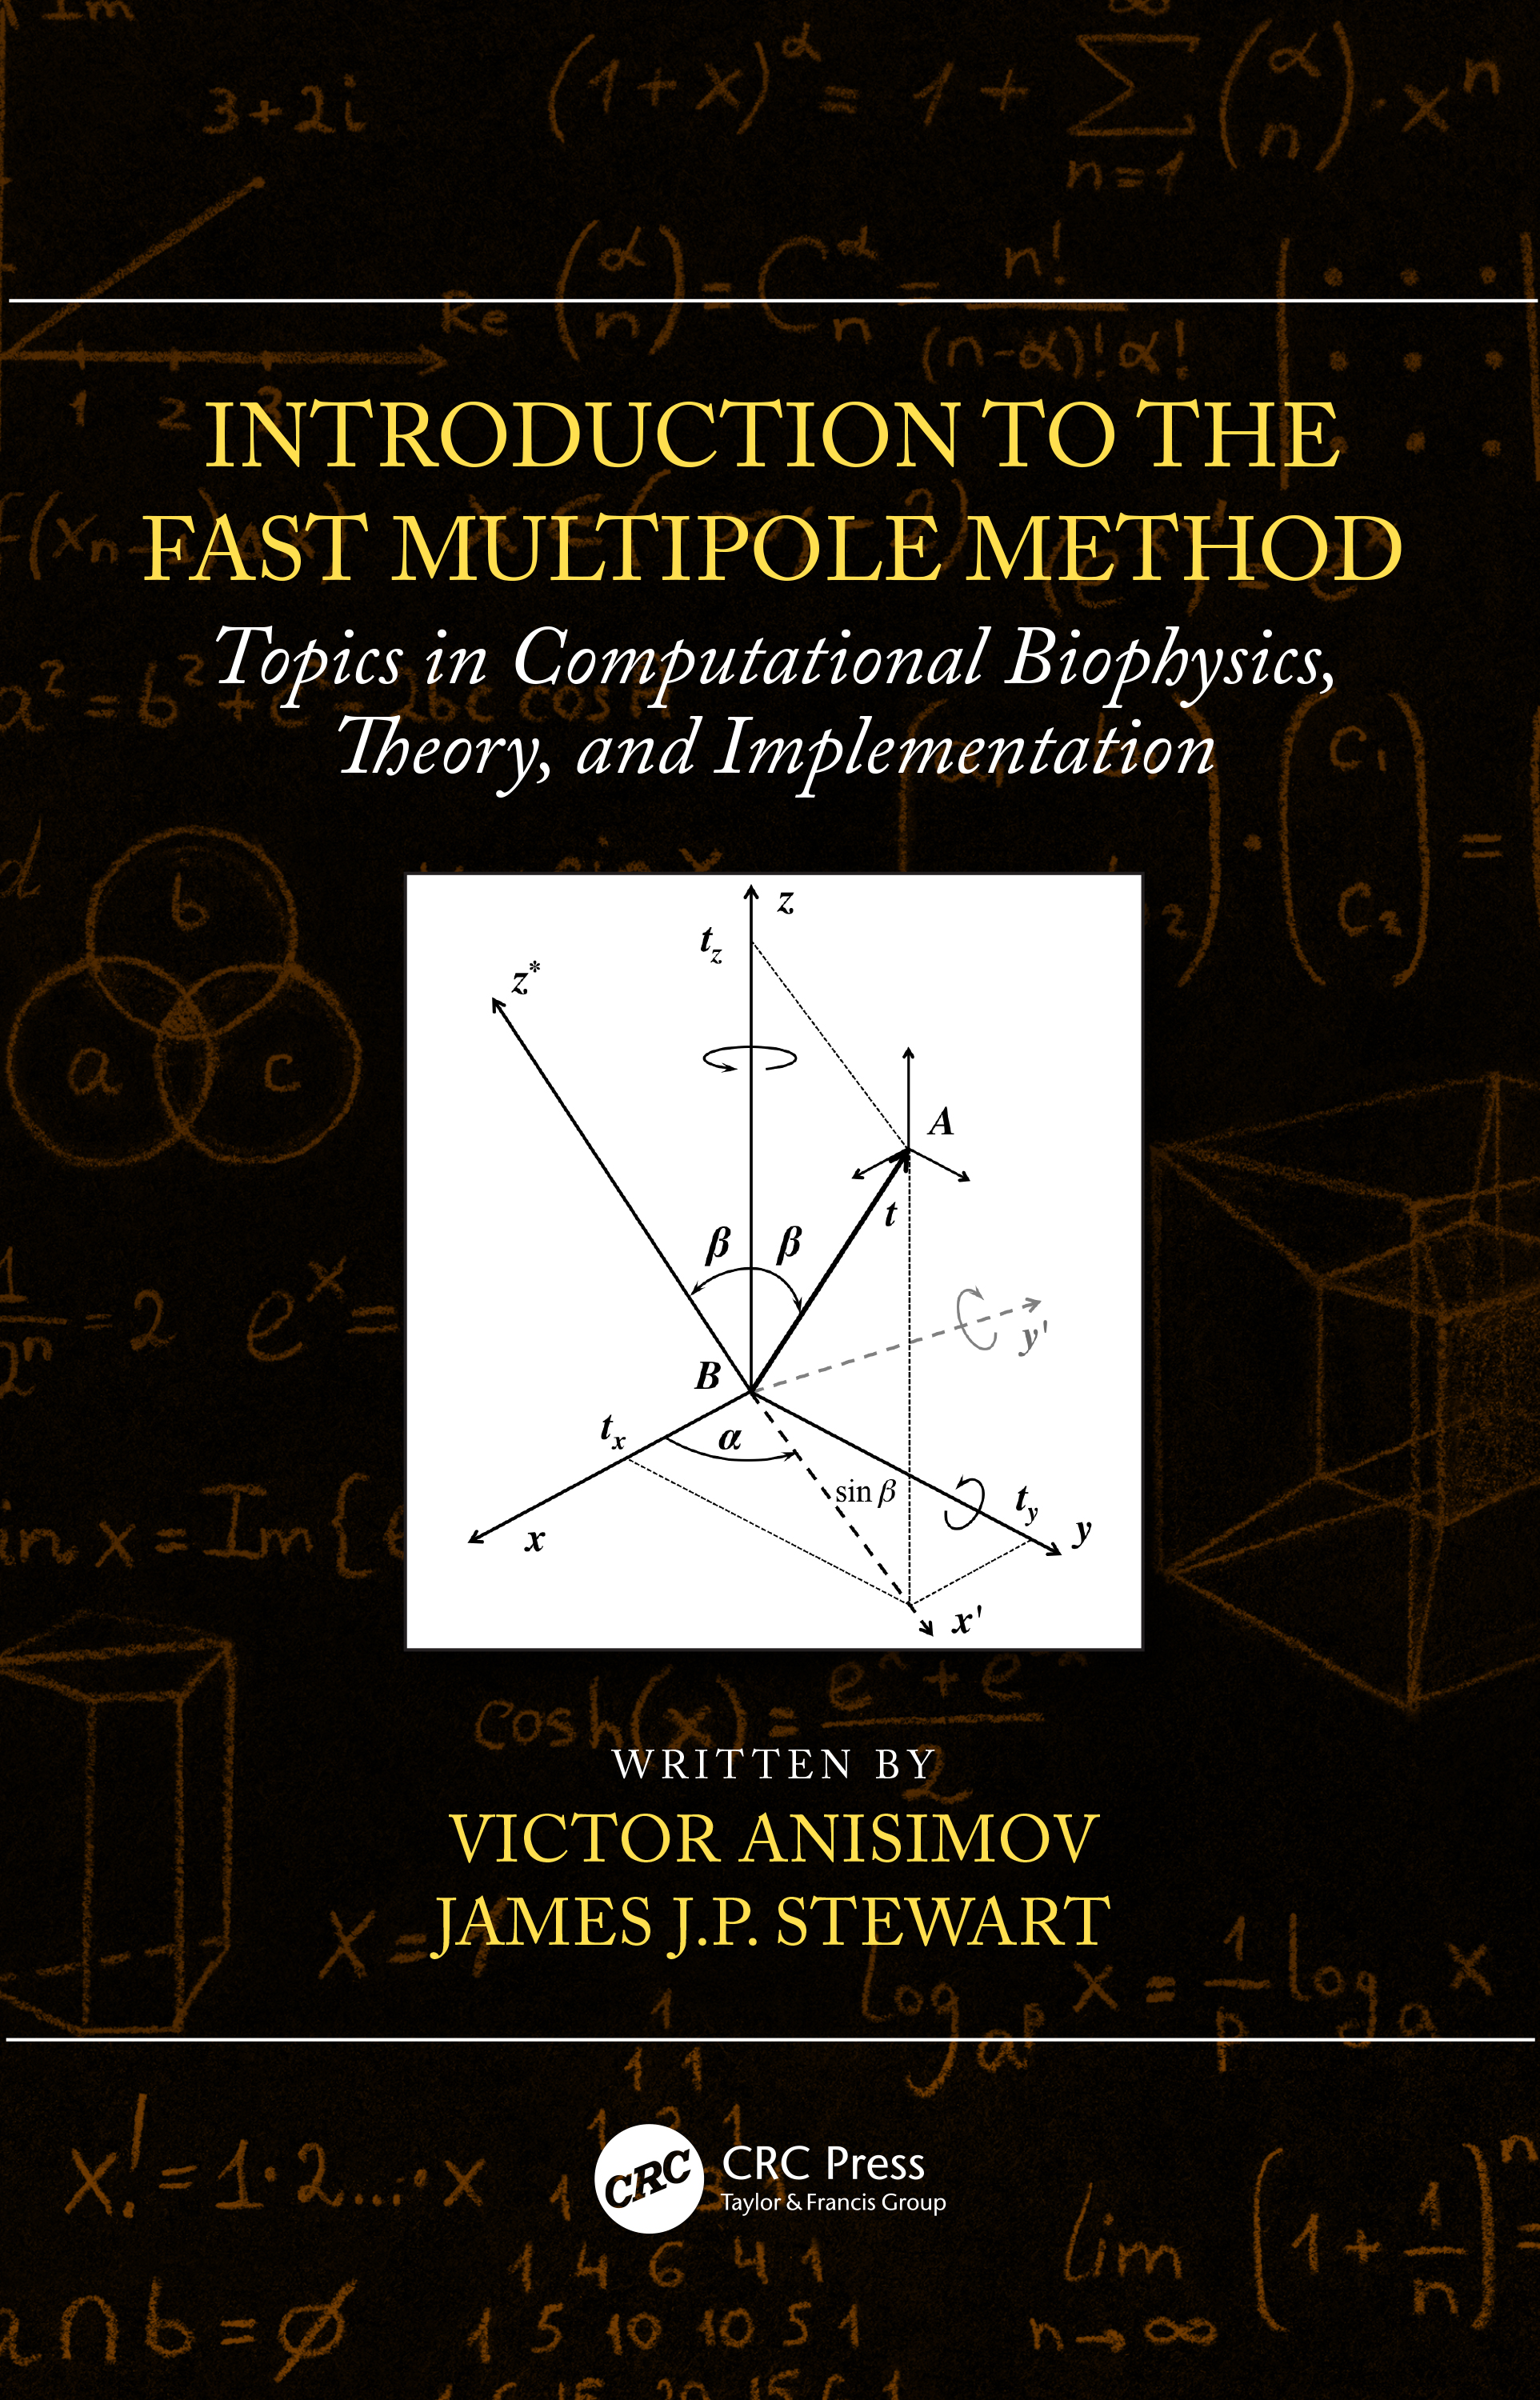 Introduction to the Fast Multipole Method: Topics in Computational Biophysics, Theory, and Implementation book cover